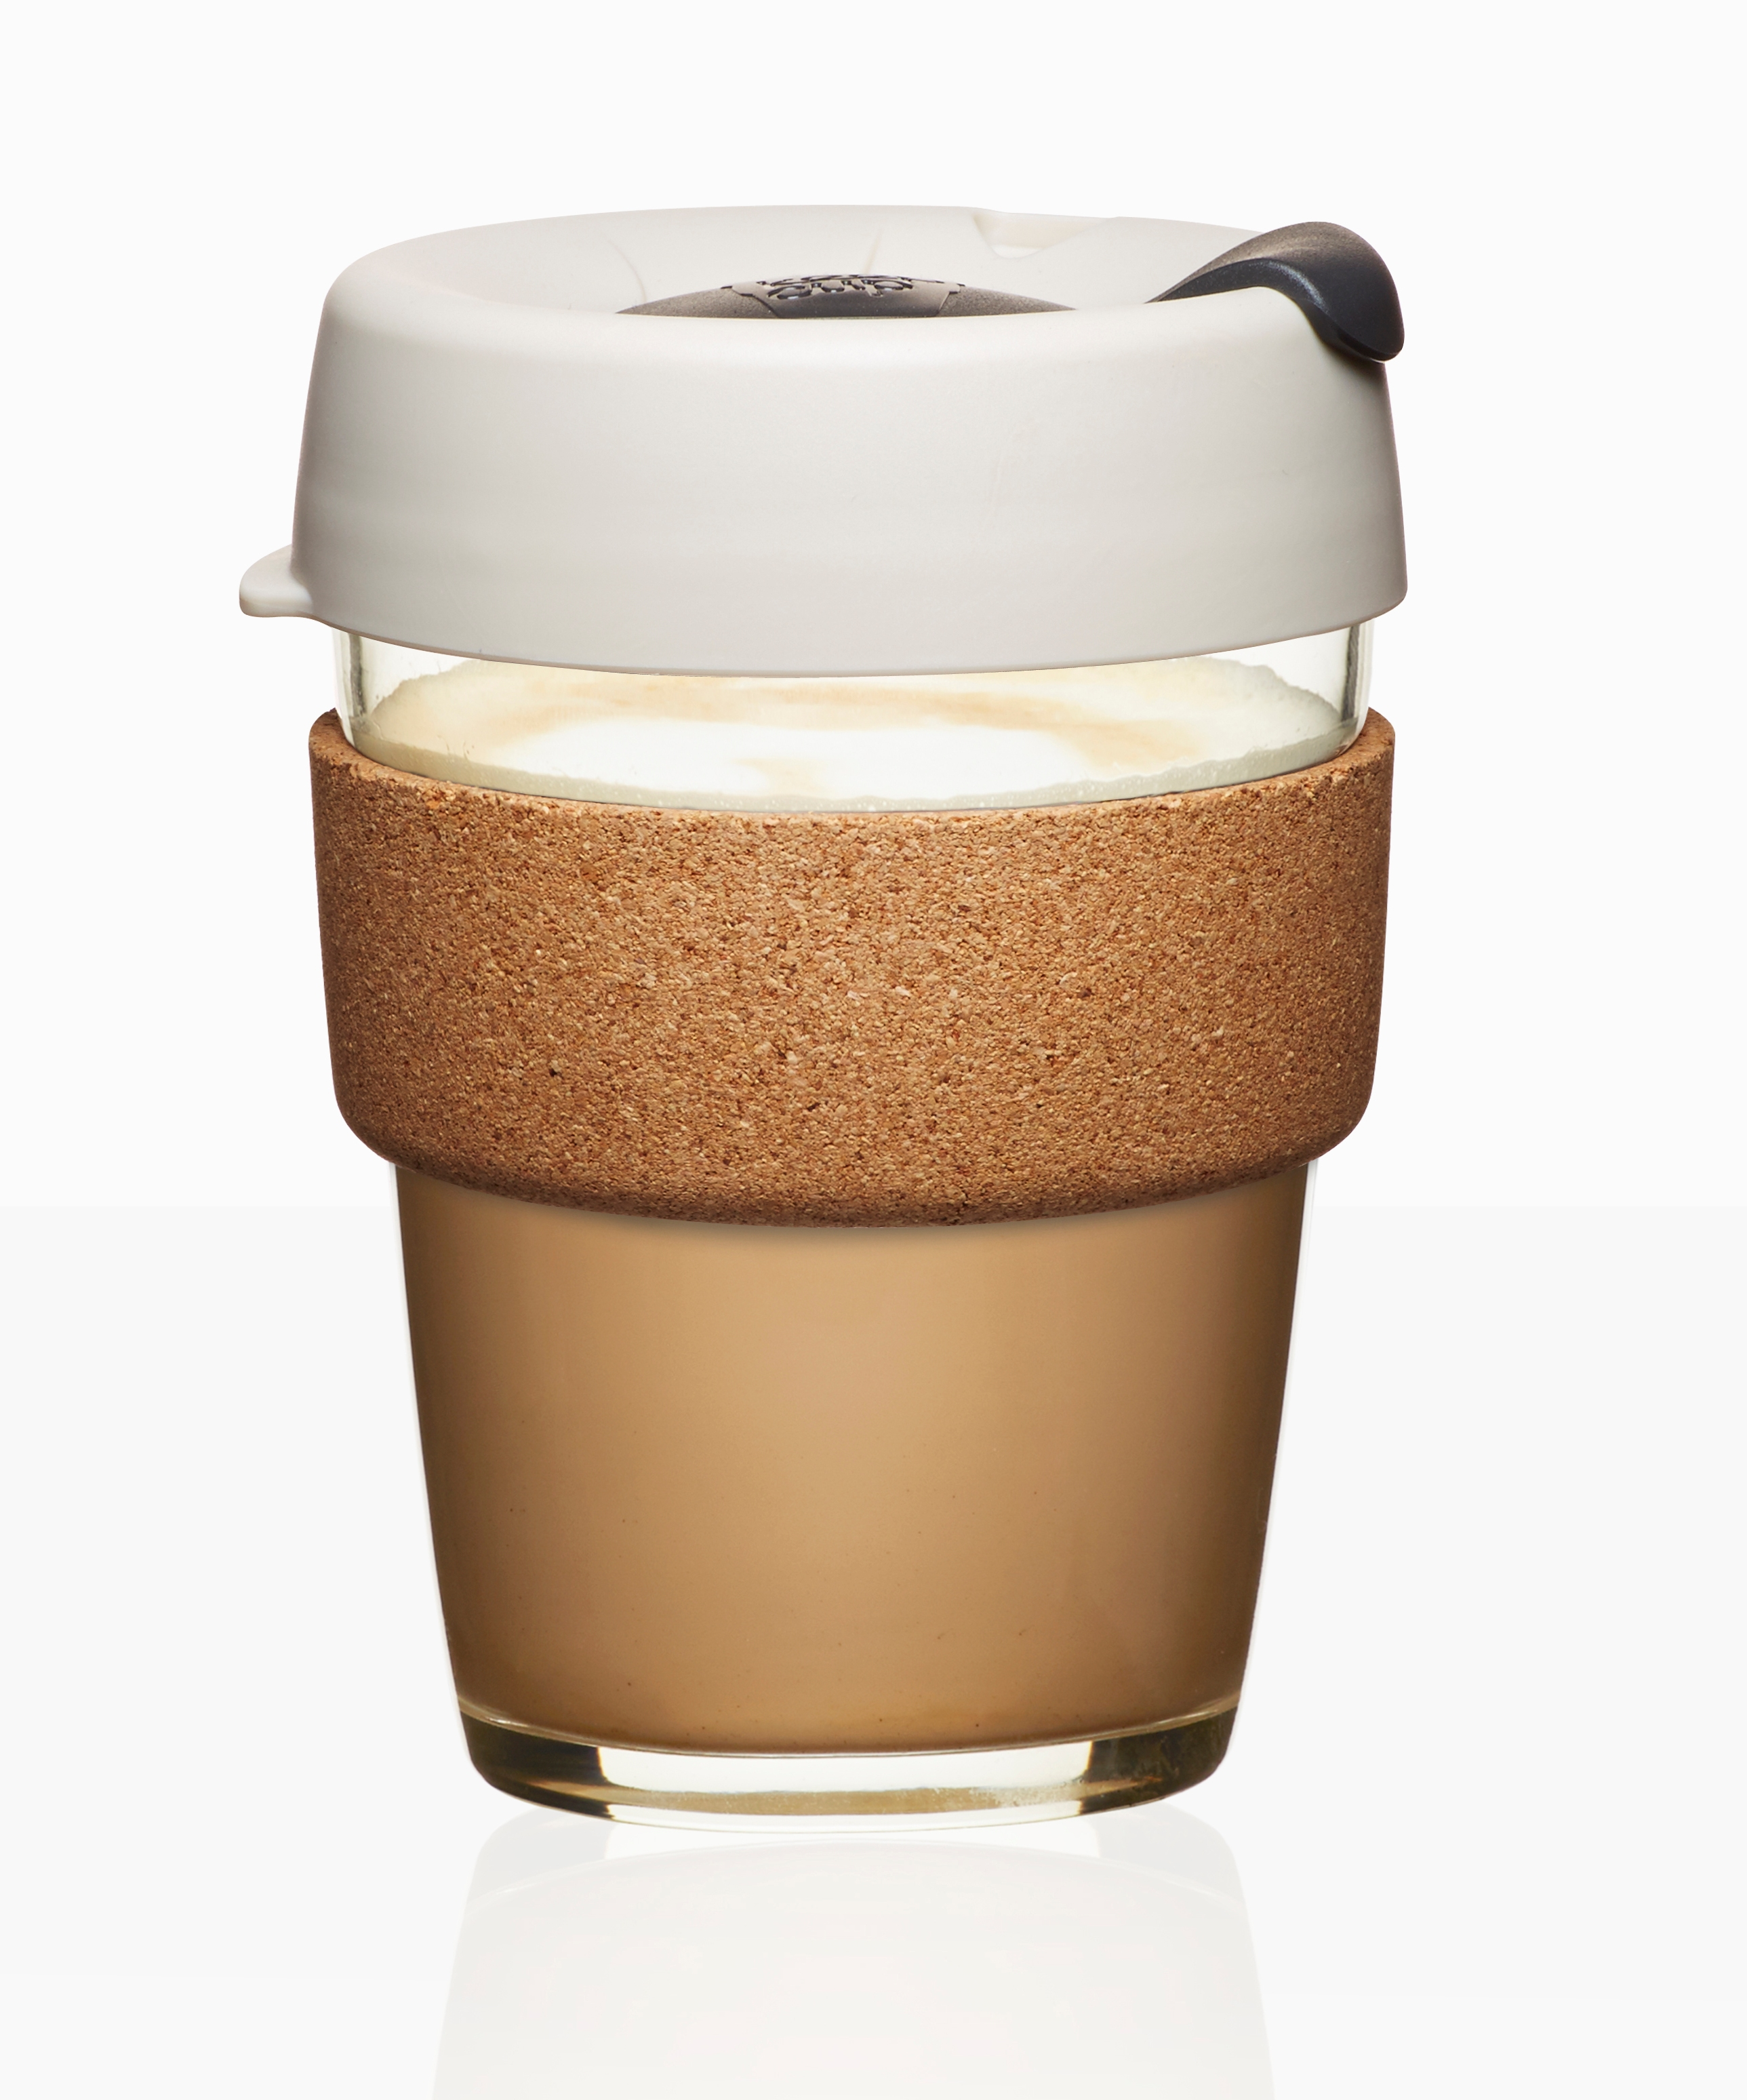 Usd 5546 Keepcup Glass Australia Imported European Coffee Cup Keep Doppio Medium 12oz 340ml Lightbox Moreview